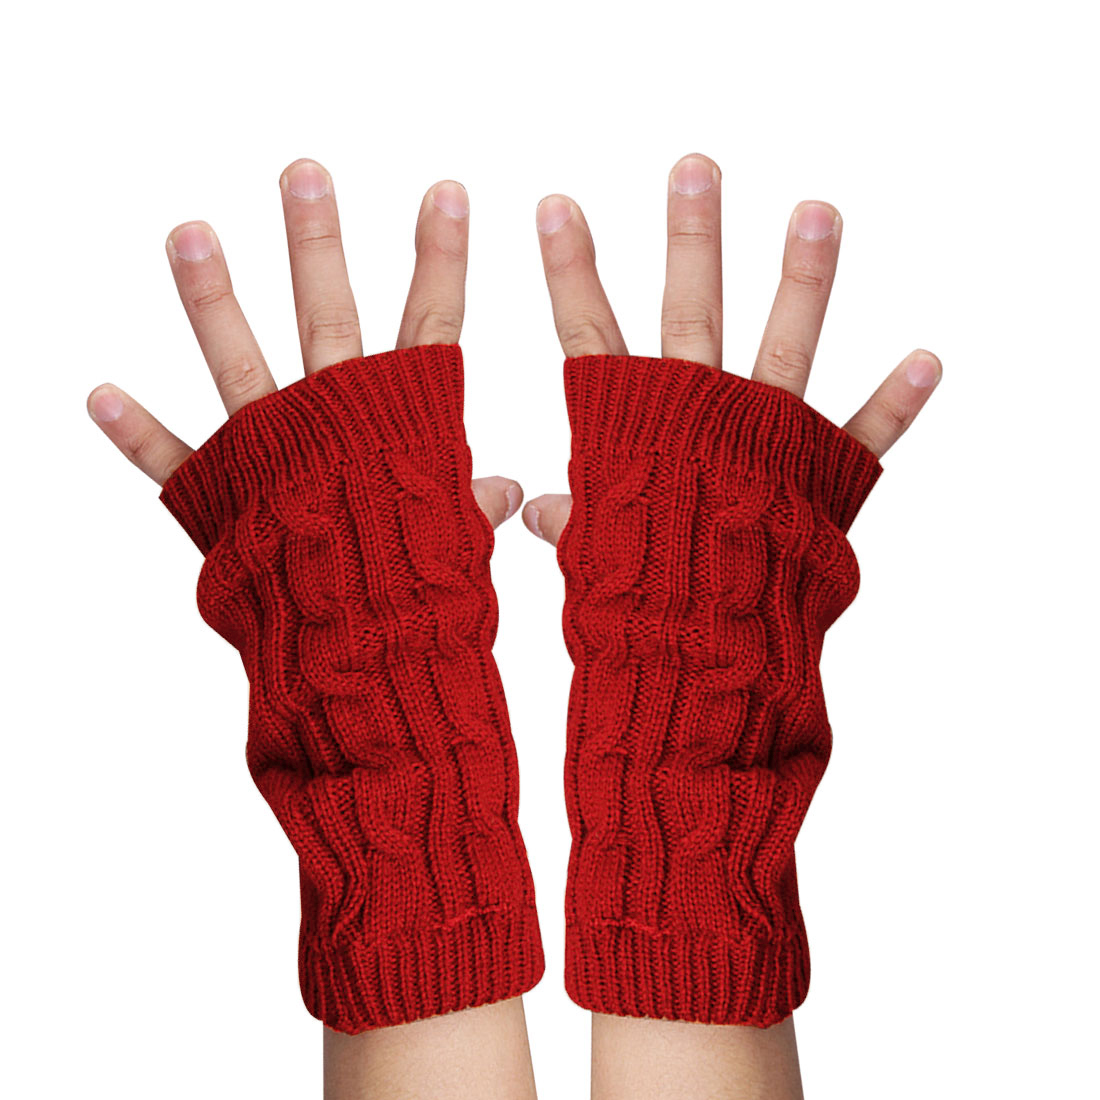 Unisex Red Winter Warmers Ribbing Knitted Thumb Hole Gloves